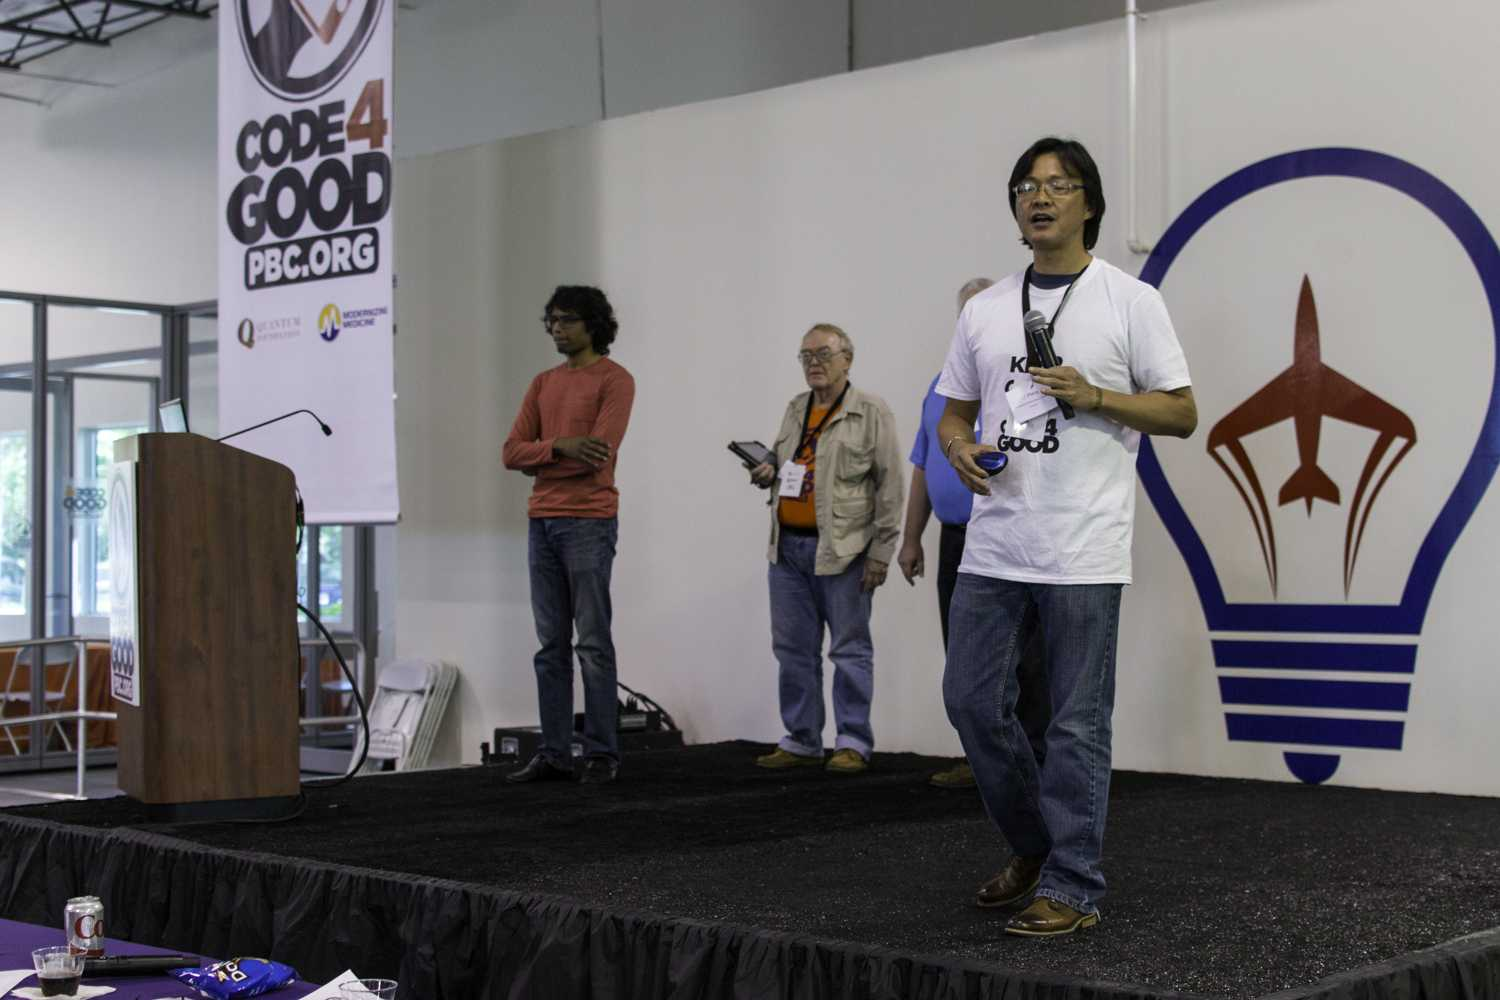 """LZ Zhang speaks on behalf of the second place winners """"FoodsharePBC"""". Photo by Alexis Hayward 